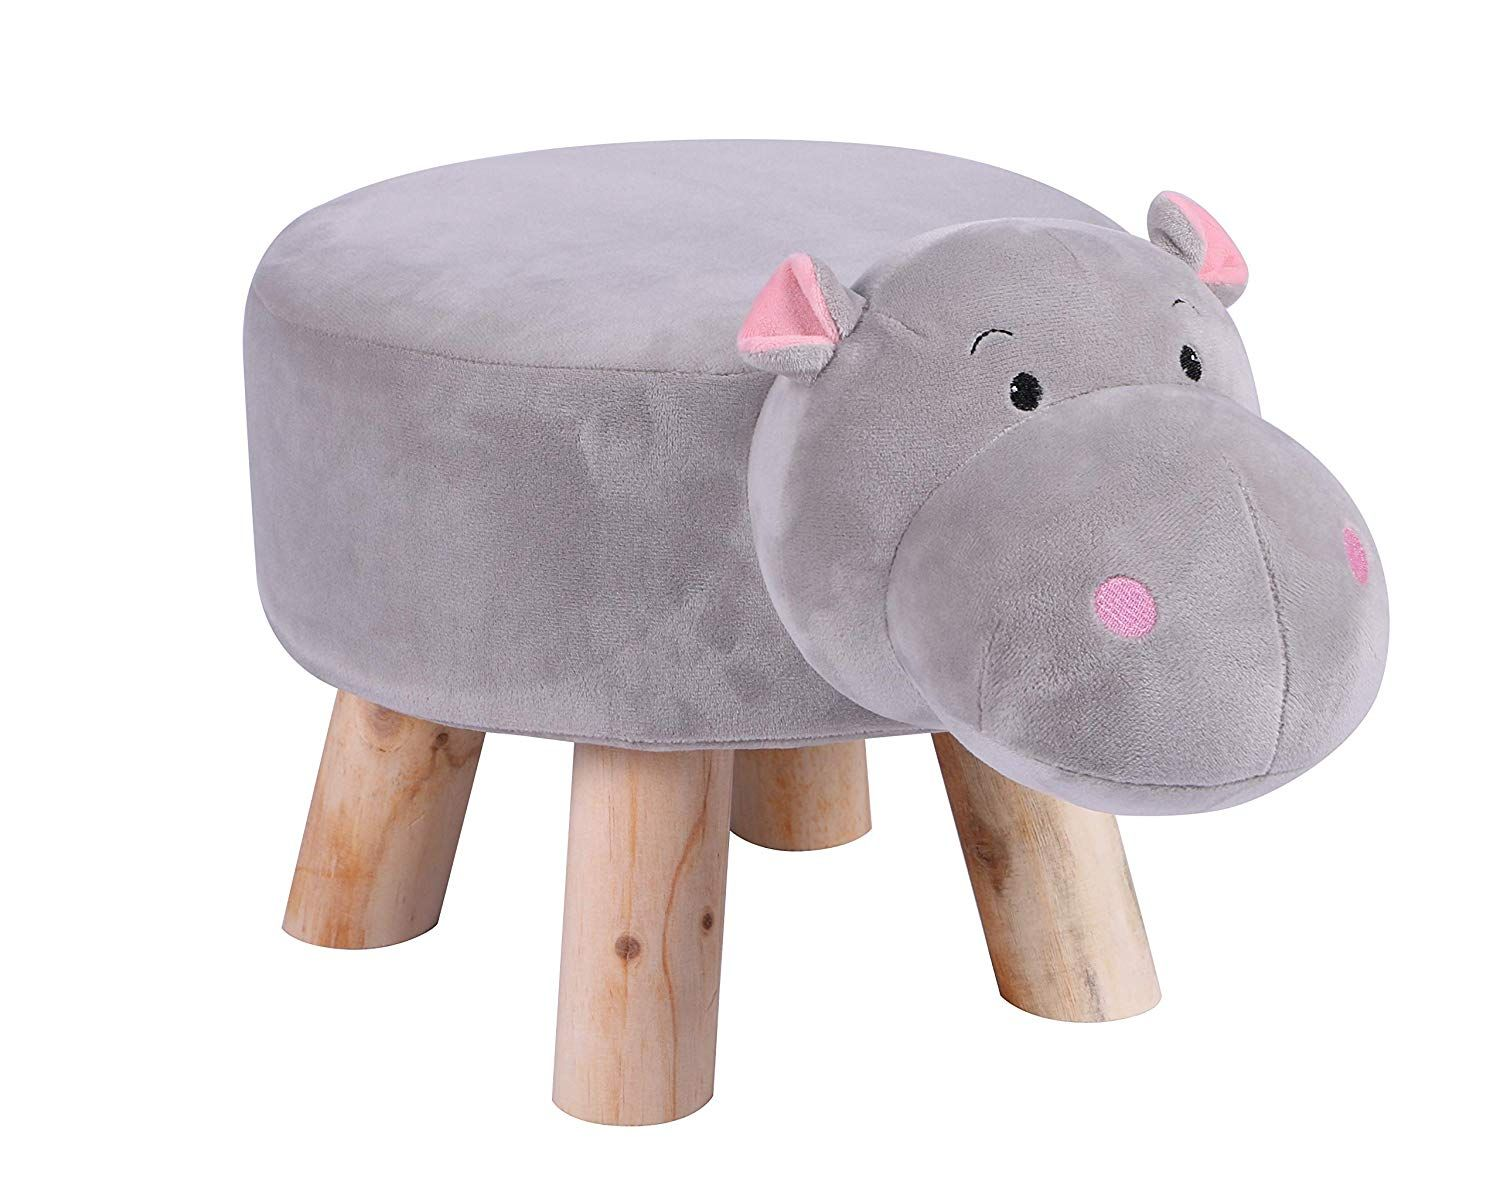 Amazon Com Little Popi Children S Favorite Animal Ottoman Kids Footrest Stool Plush Ride On Seat Removable And Washable Kids Safe Storage Stool Childrens